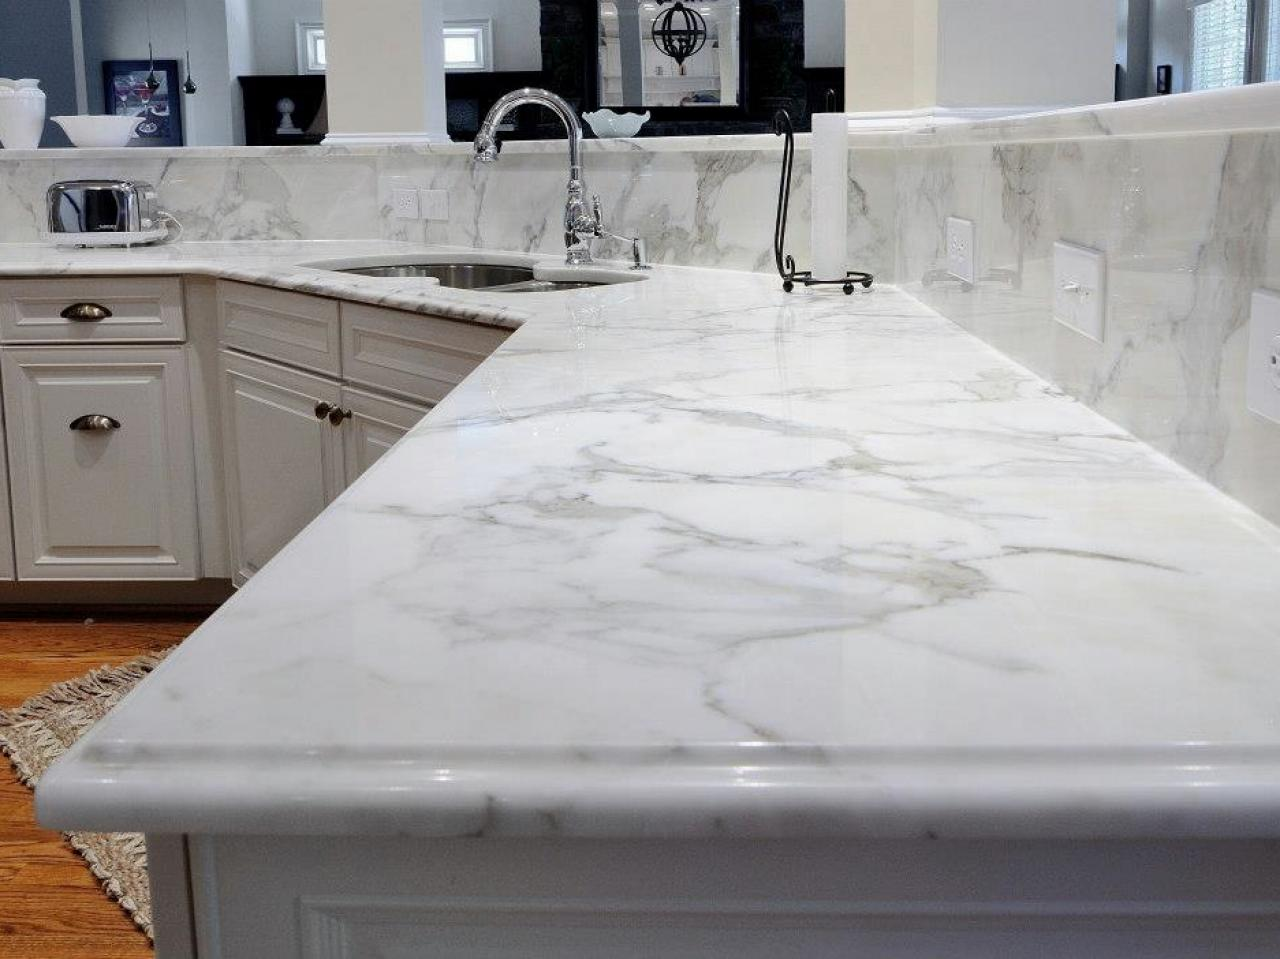 Kitchen Countertops Laminate : Laminate Kitchen Countertops: Pictures & Ideas From HGTV Kitchen ...